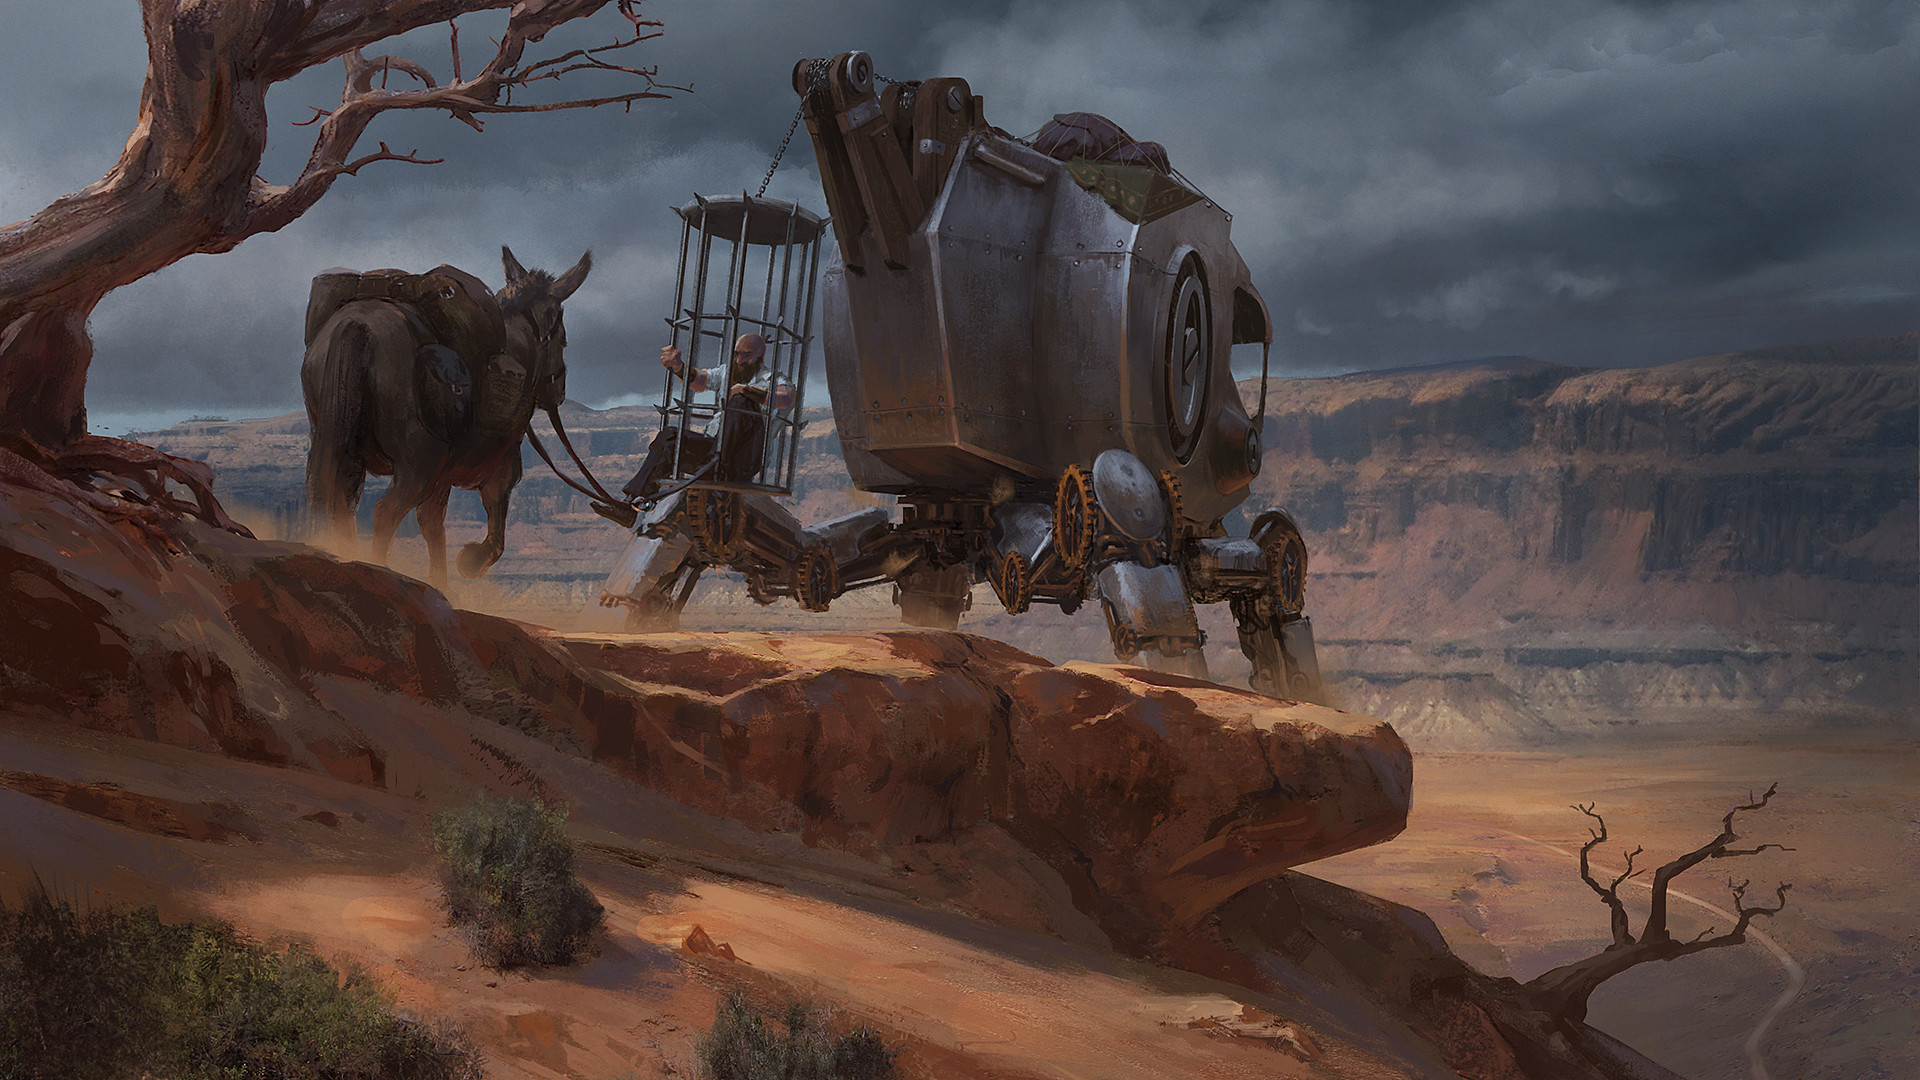 Klaus pillon cage mech imgar final